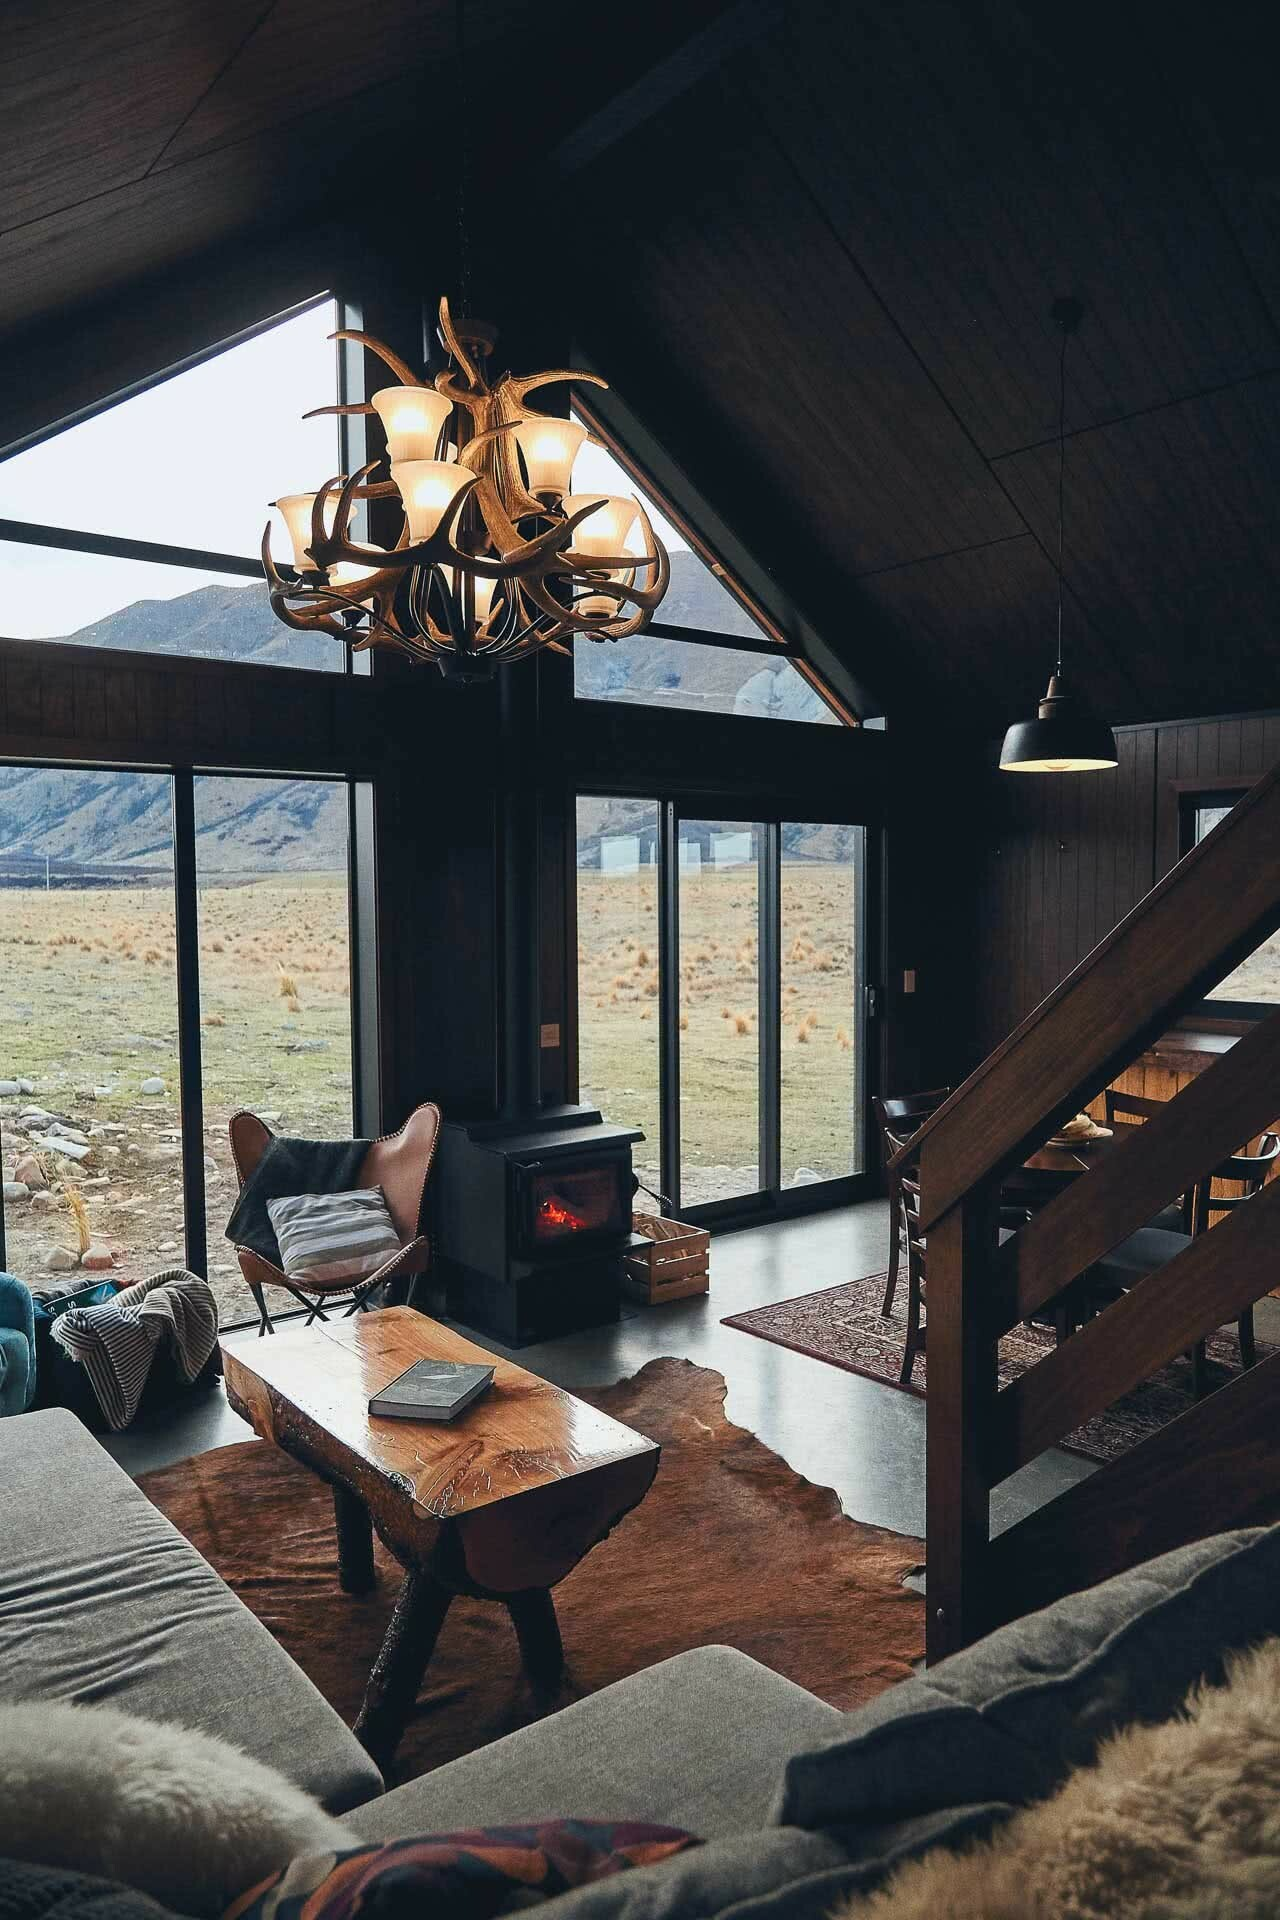 This High Country Cabin Offers the Wild Isolation We All Need Right Now, photo by Kenny Smith, cabin, isolation, twizel, south island, new zealand, interior